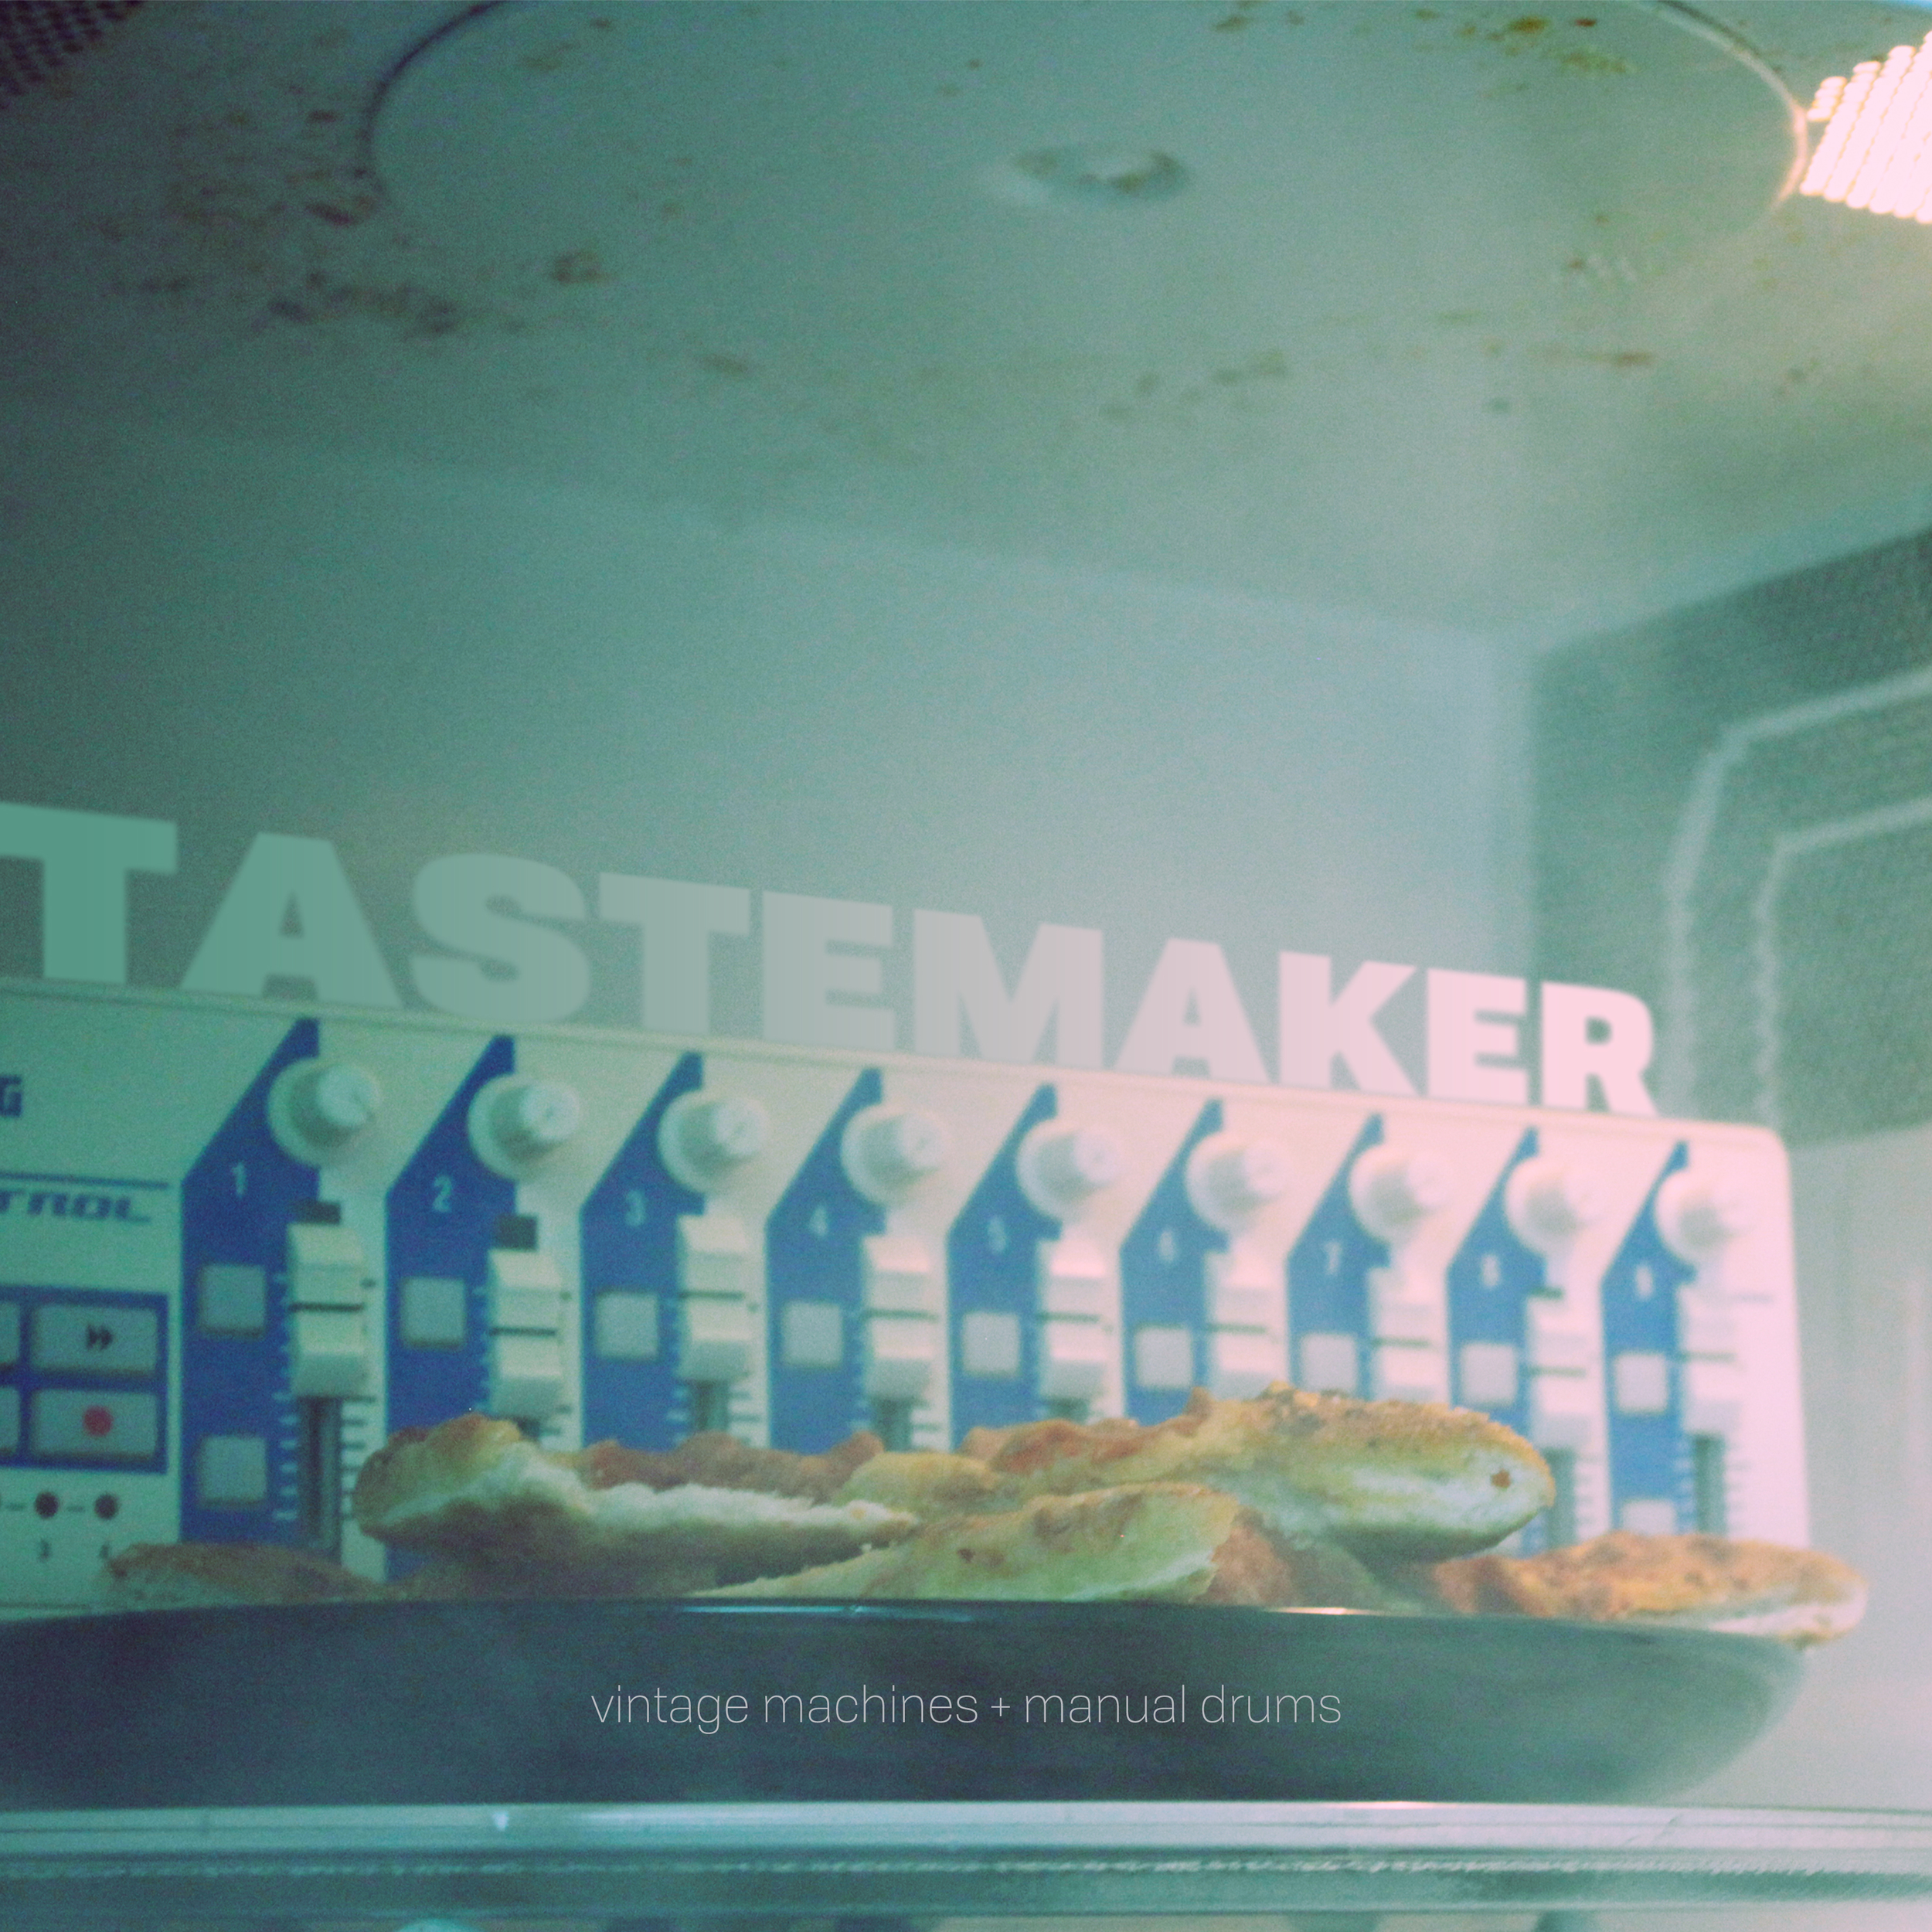 tastemakers+vol+1+artwork+2.jpg